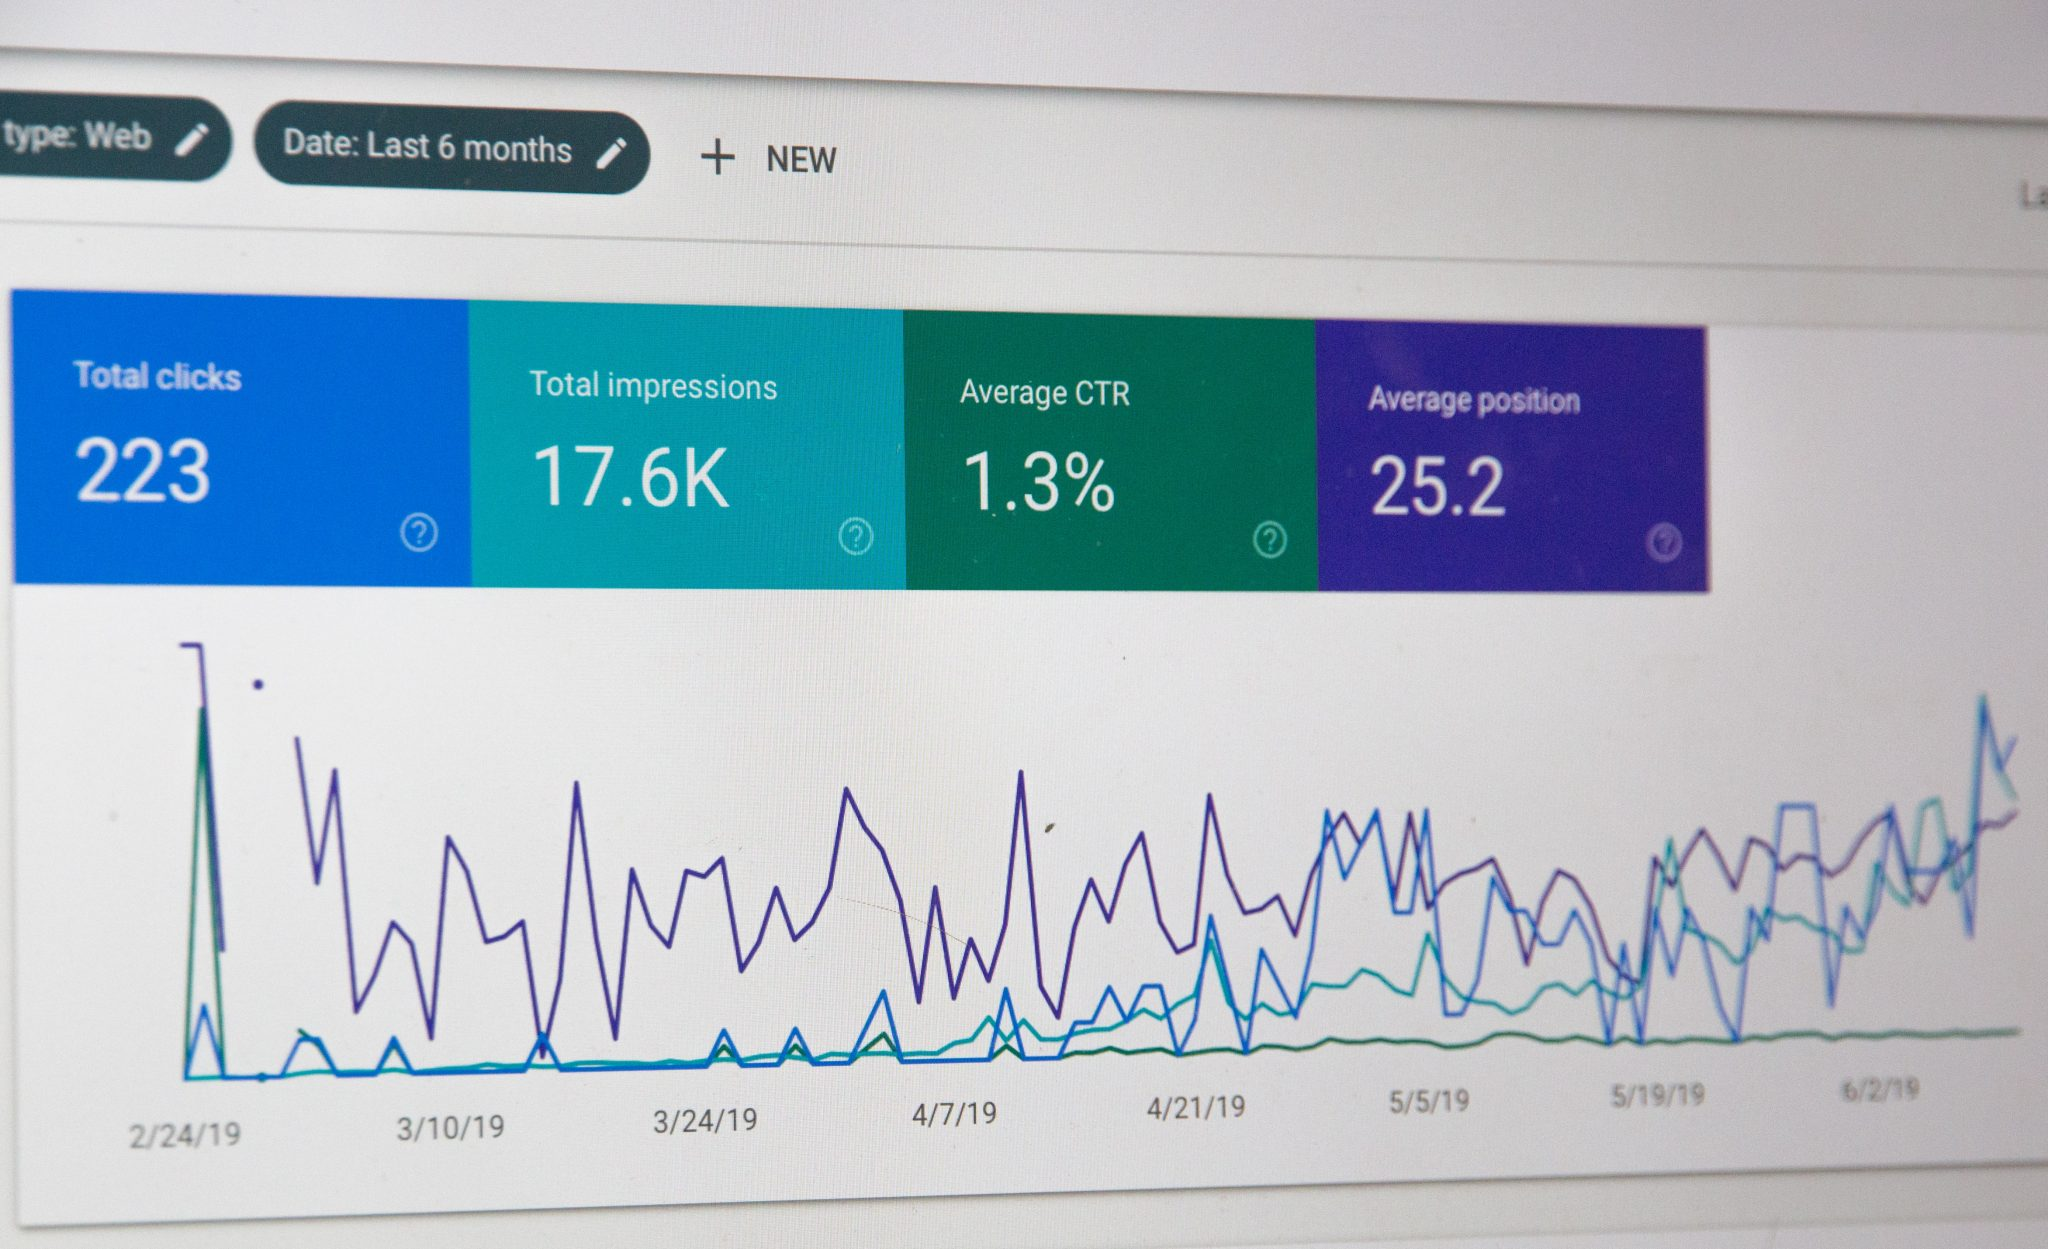 Analytics and data to track the performance of your website